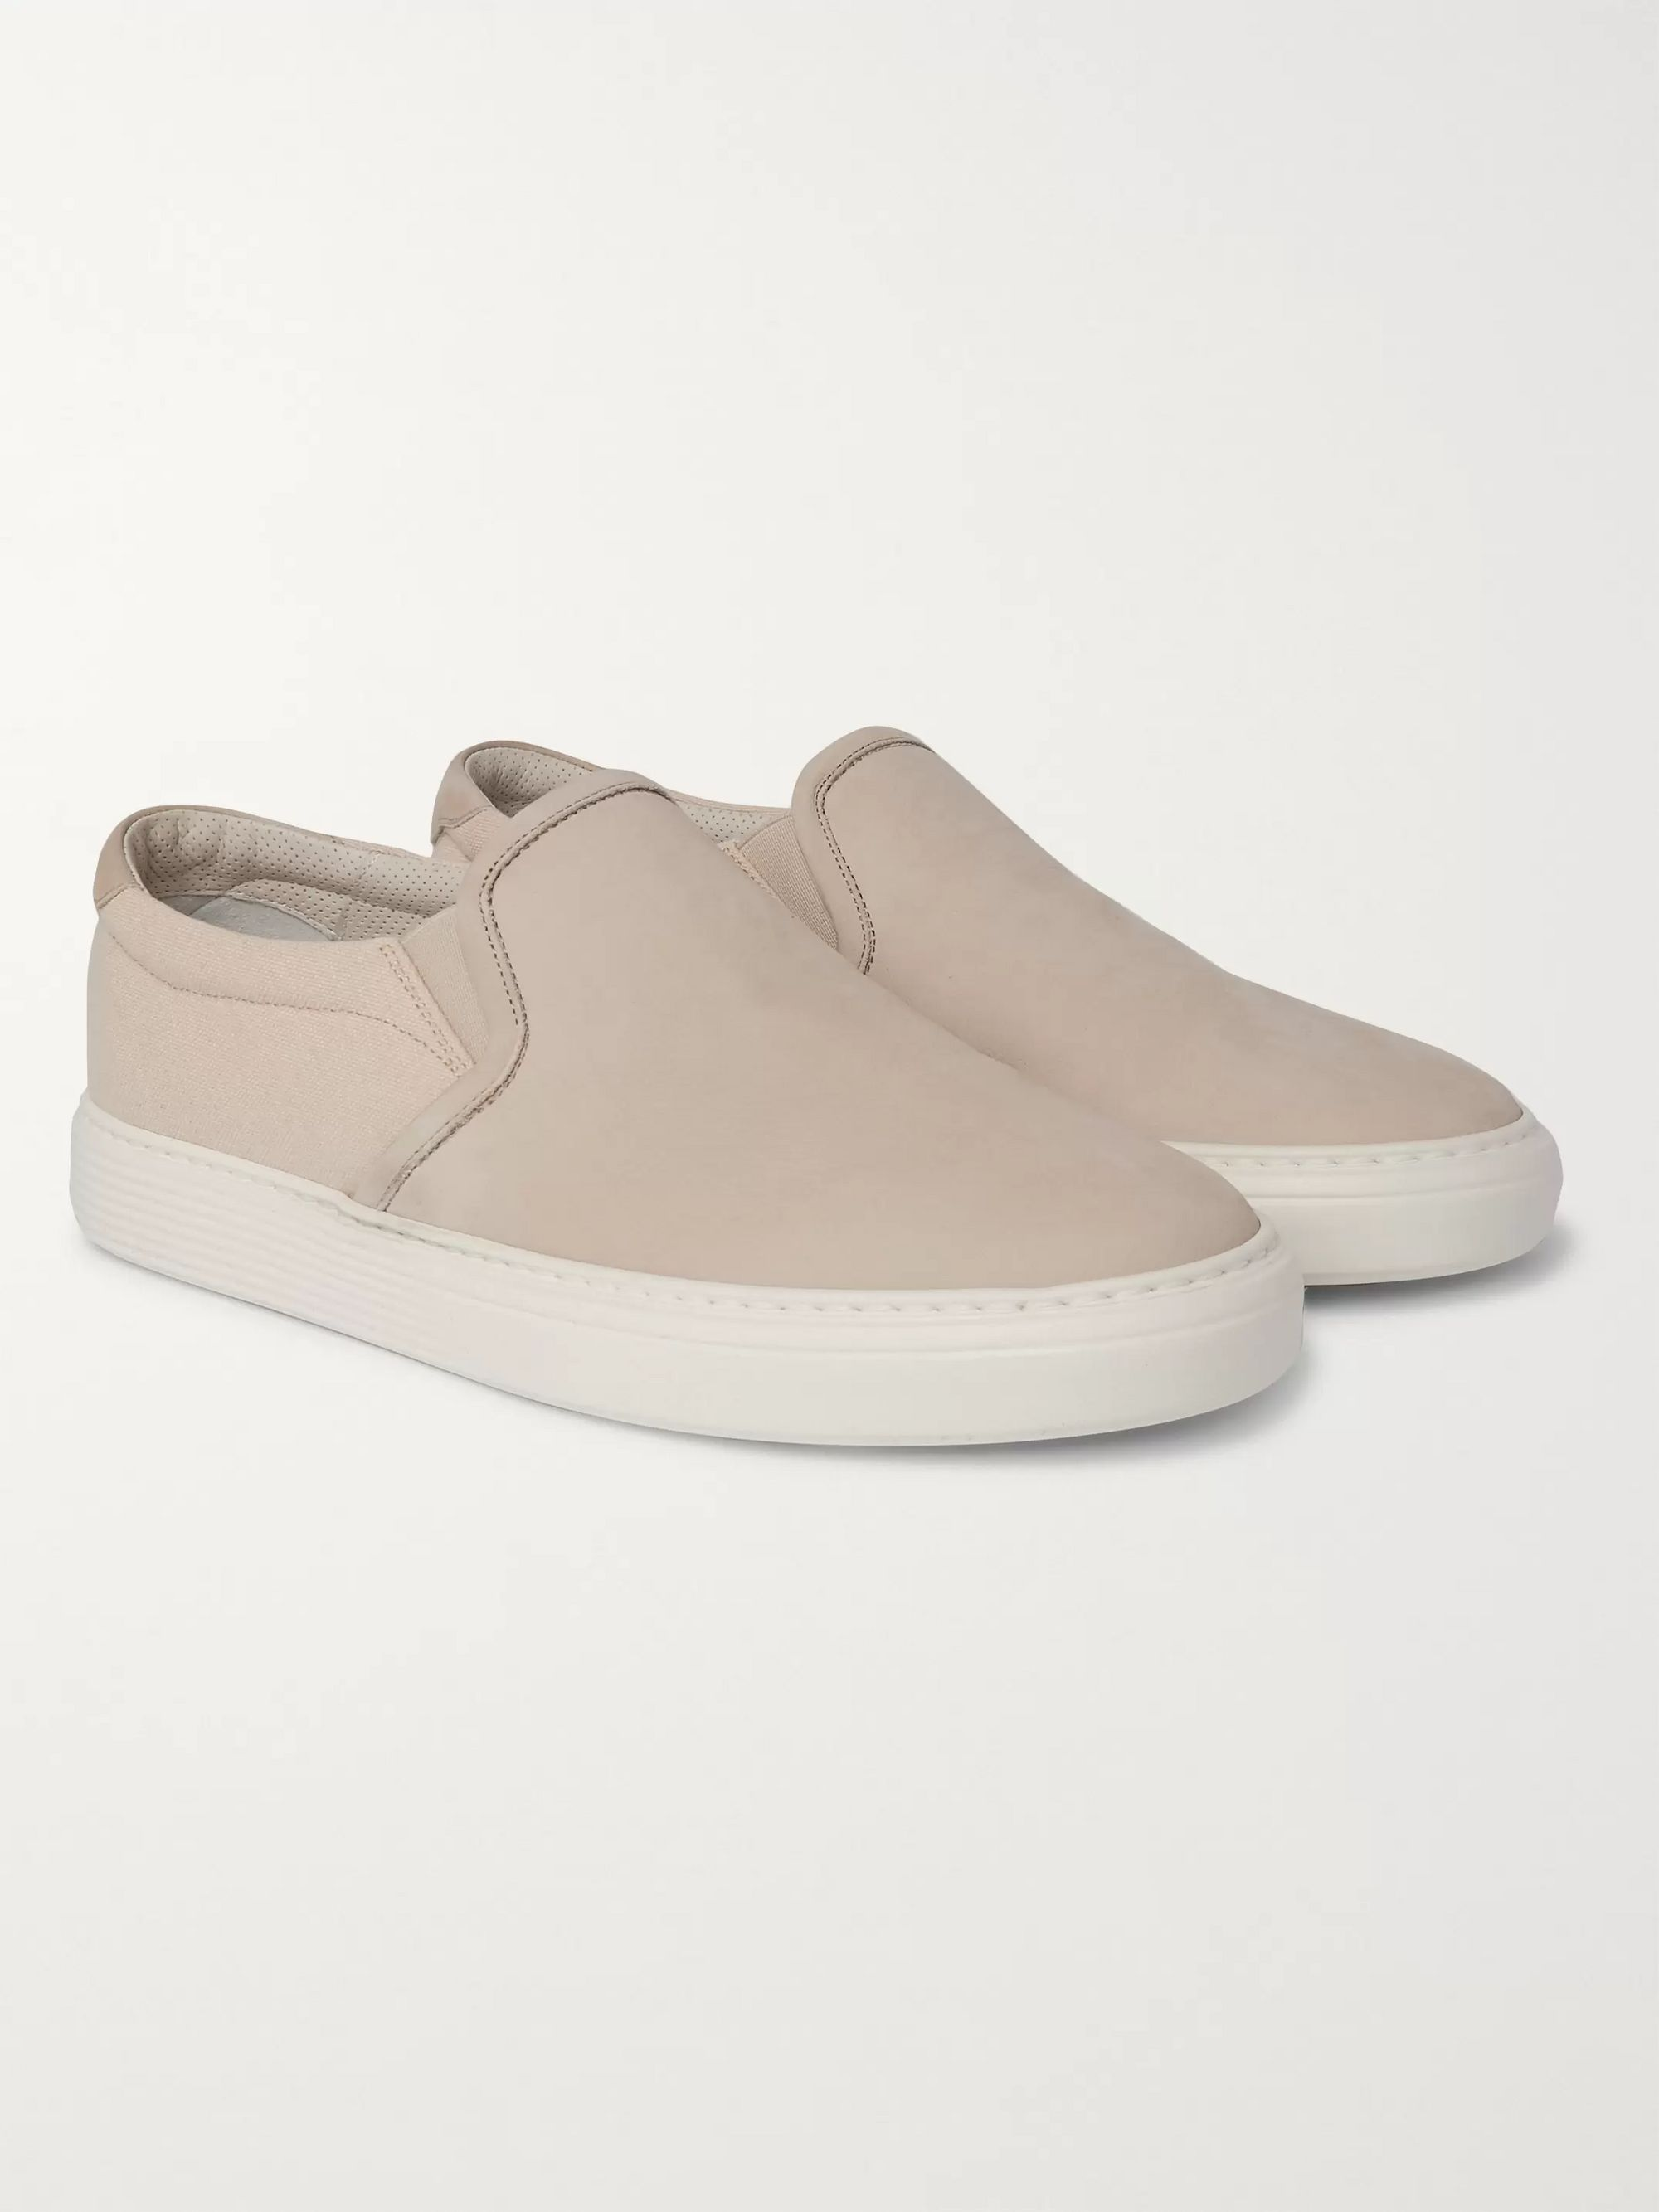 Brunello Cucinelli Nubuck and Canvas Slip-On Sneakers